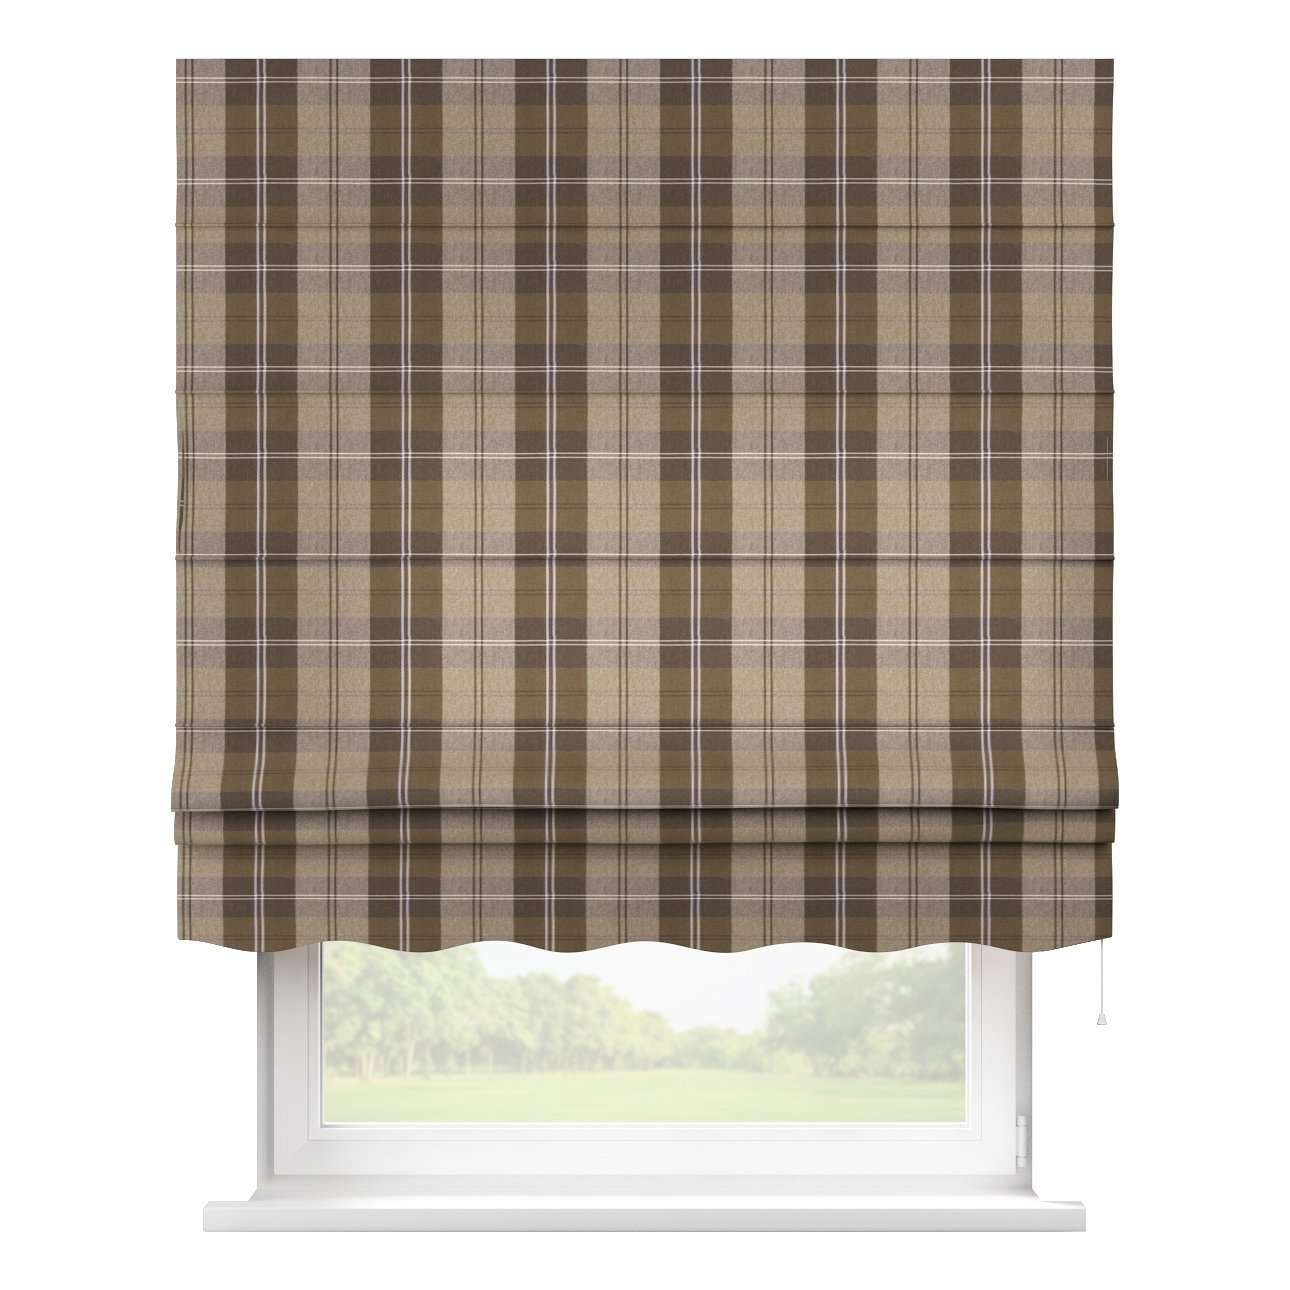 Florence roman blind  80 × 170 cm (31.5 × 67 inch) in collection Edinburgh, fabric: 115-76